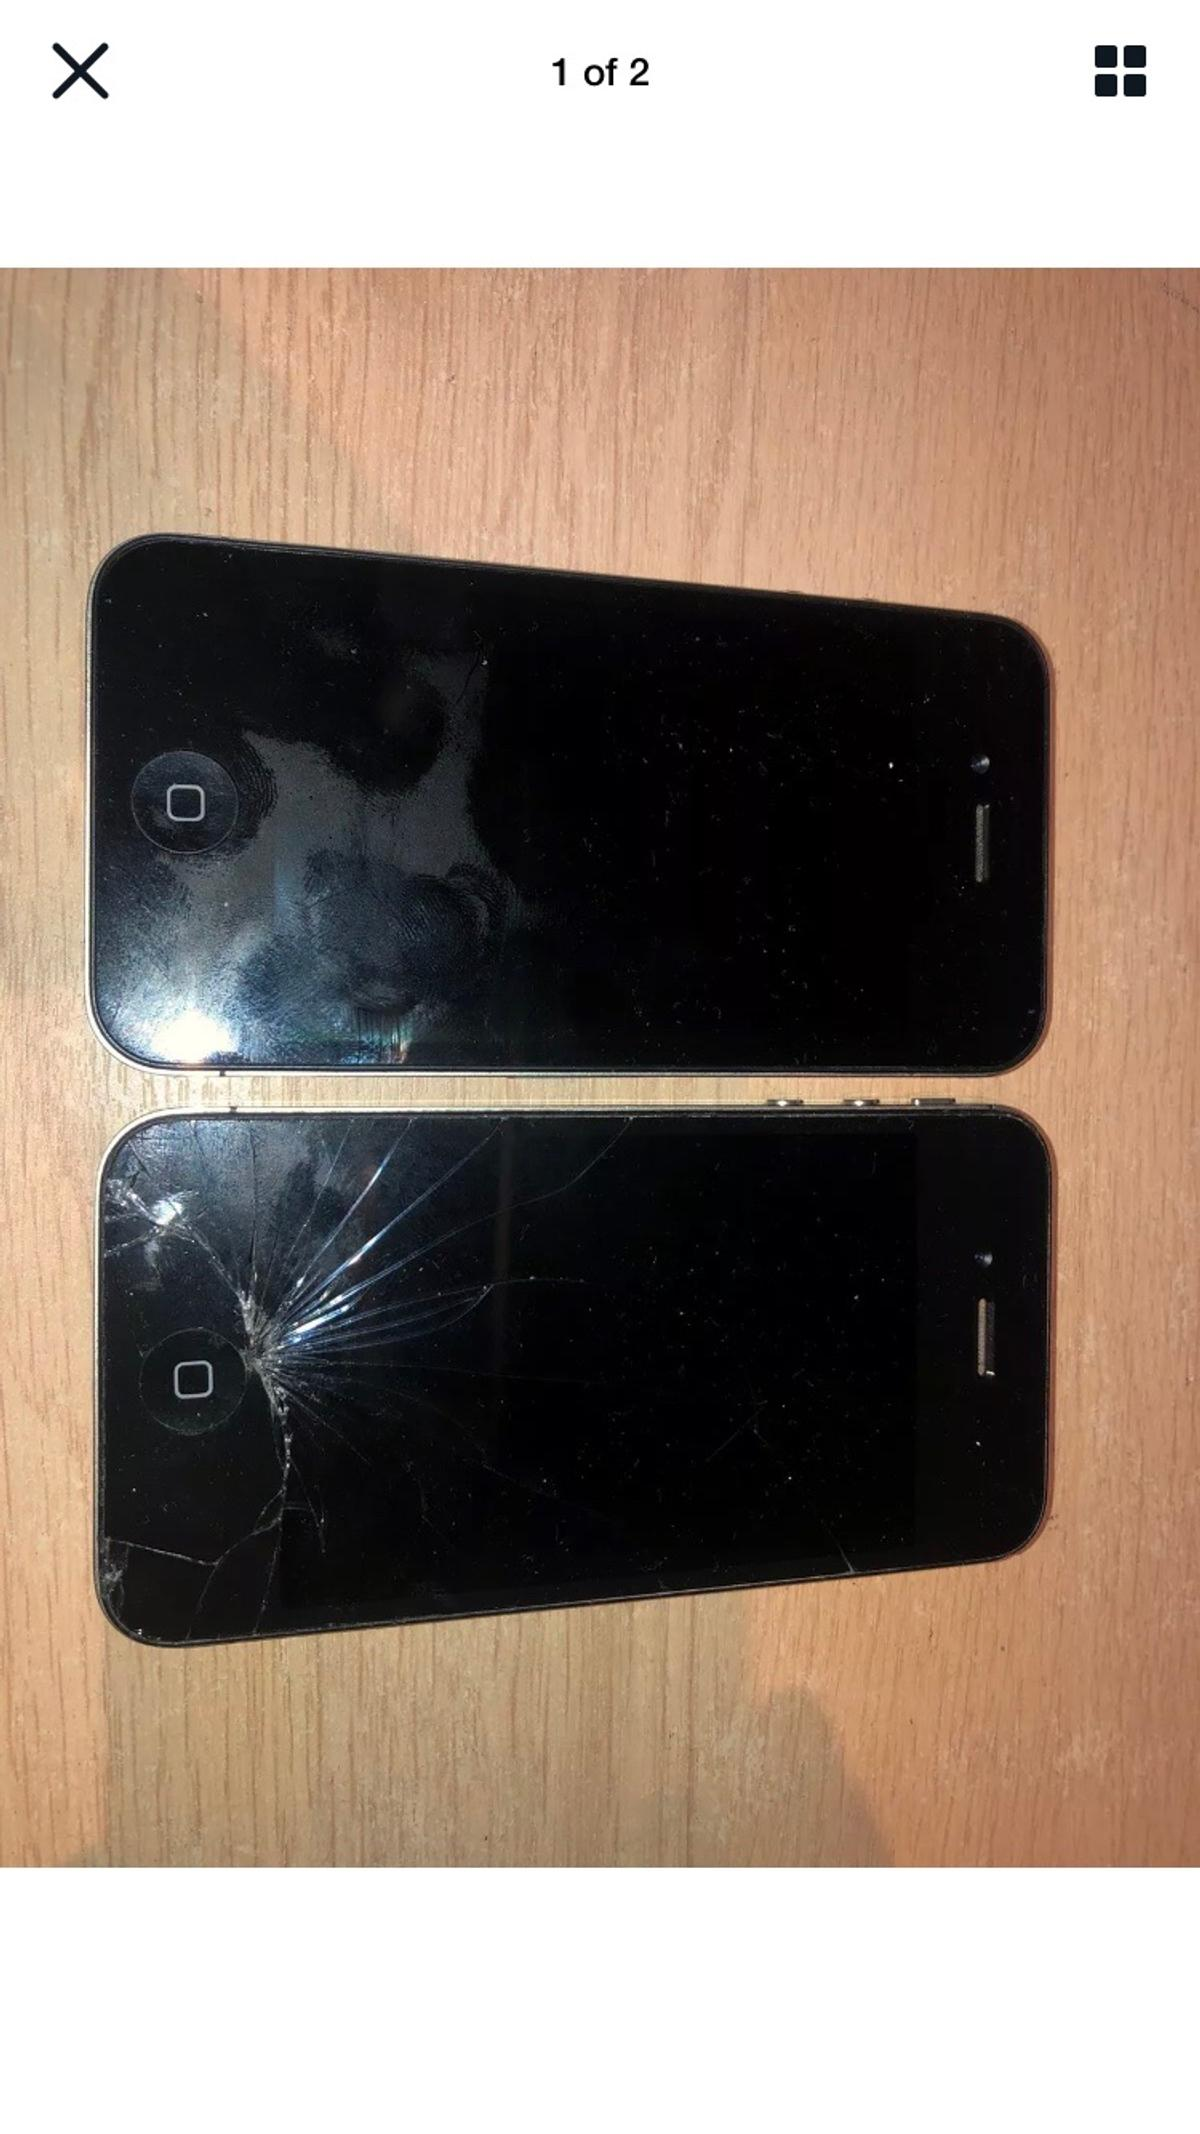 2 x iPhone 4 both fones sold not working